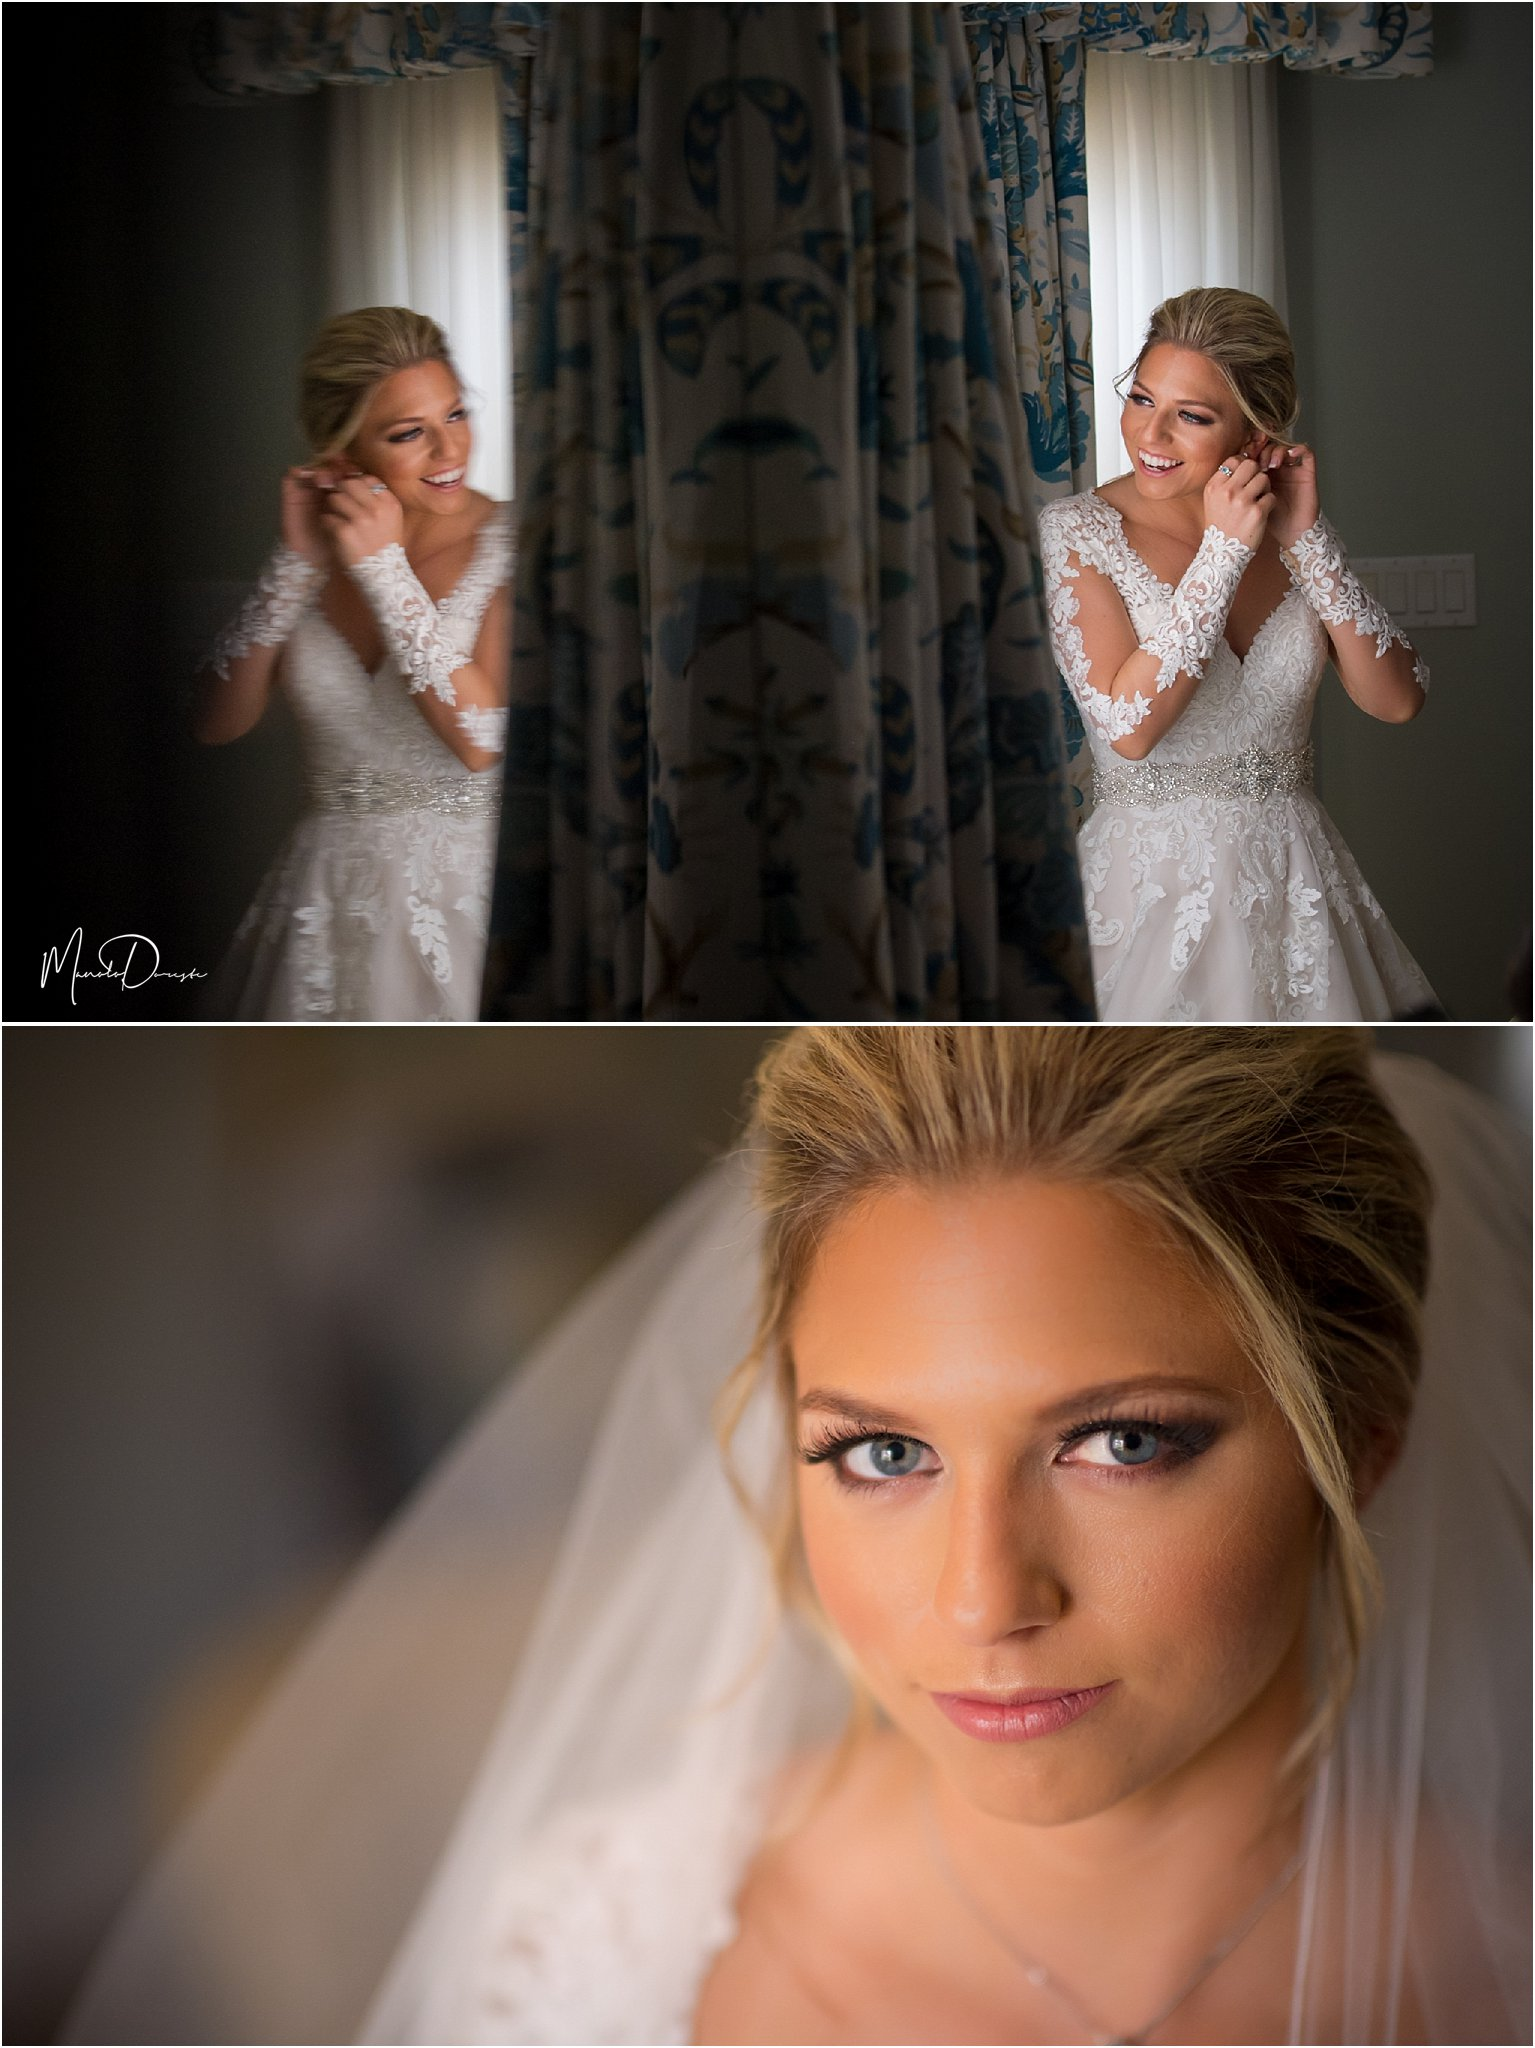 0254_ManoloDoreste_InFocusStudios_Wedding_Family_Photography_Miami_MiamiPhotographer.jpg